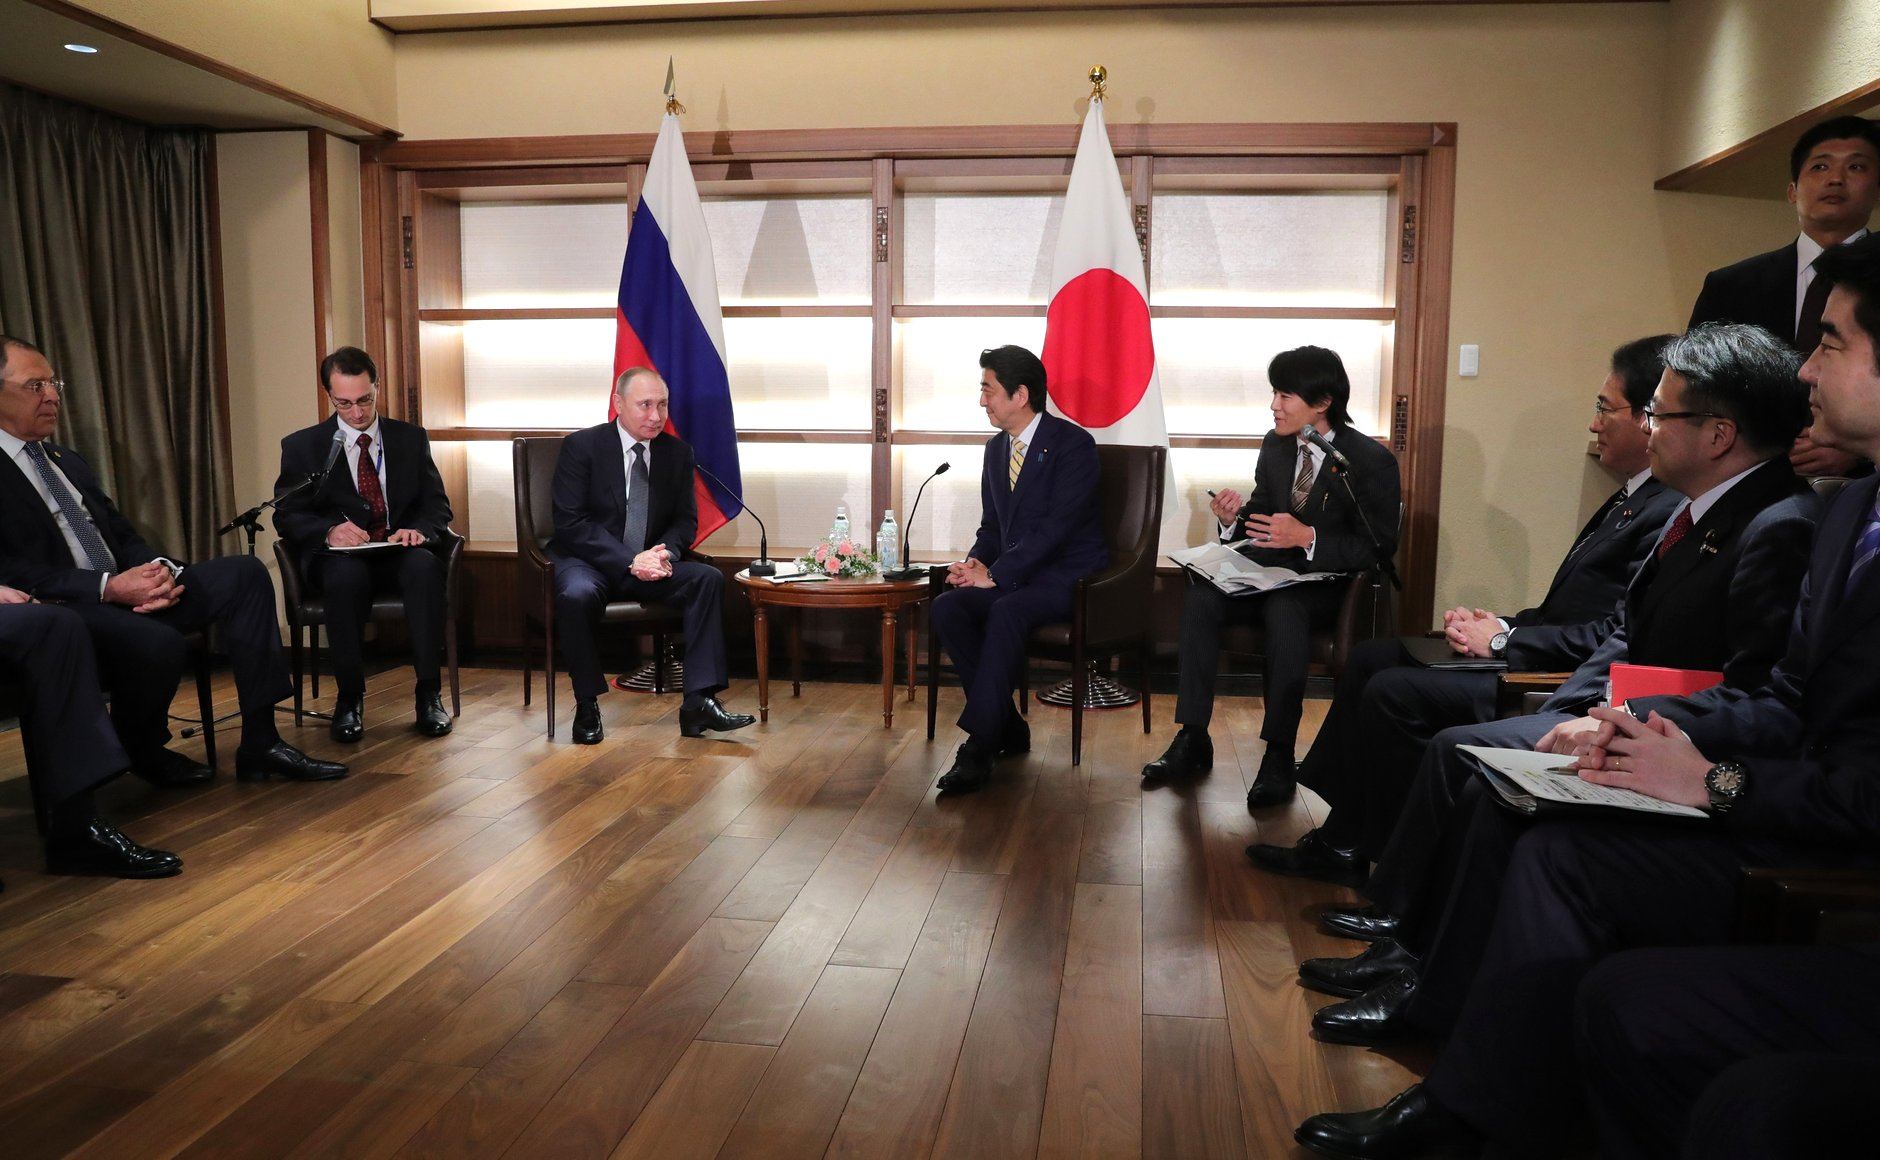 Vladimir Putin with with Japan's Prime Minister Shinzo Abe in Nagato